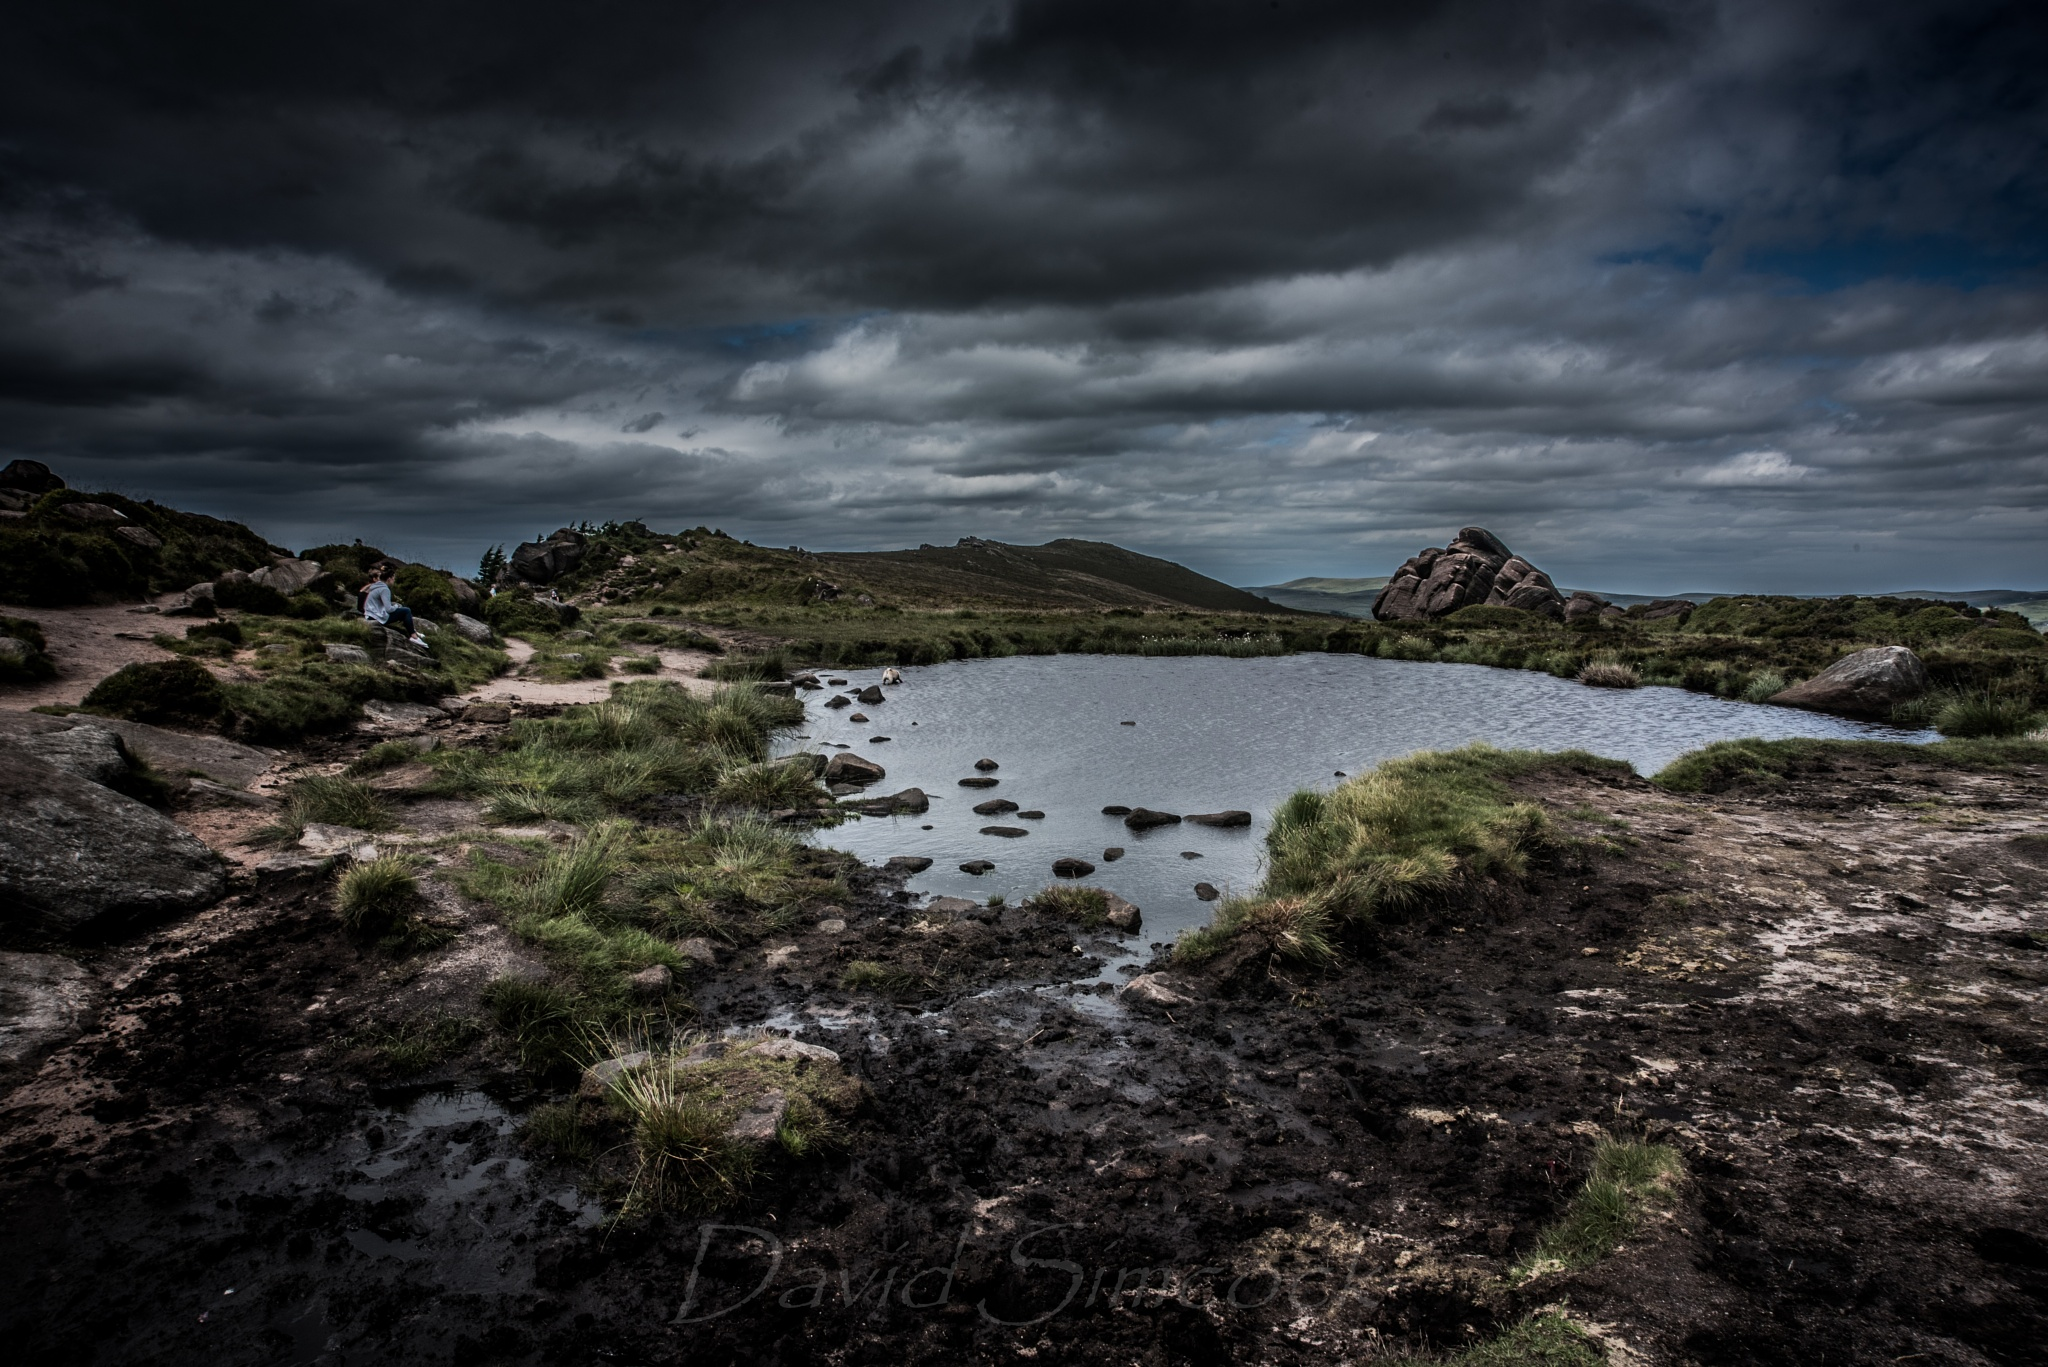 Doxey Pool - Home of the legendary Mermaid by David.Simcock